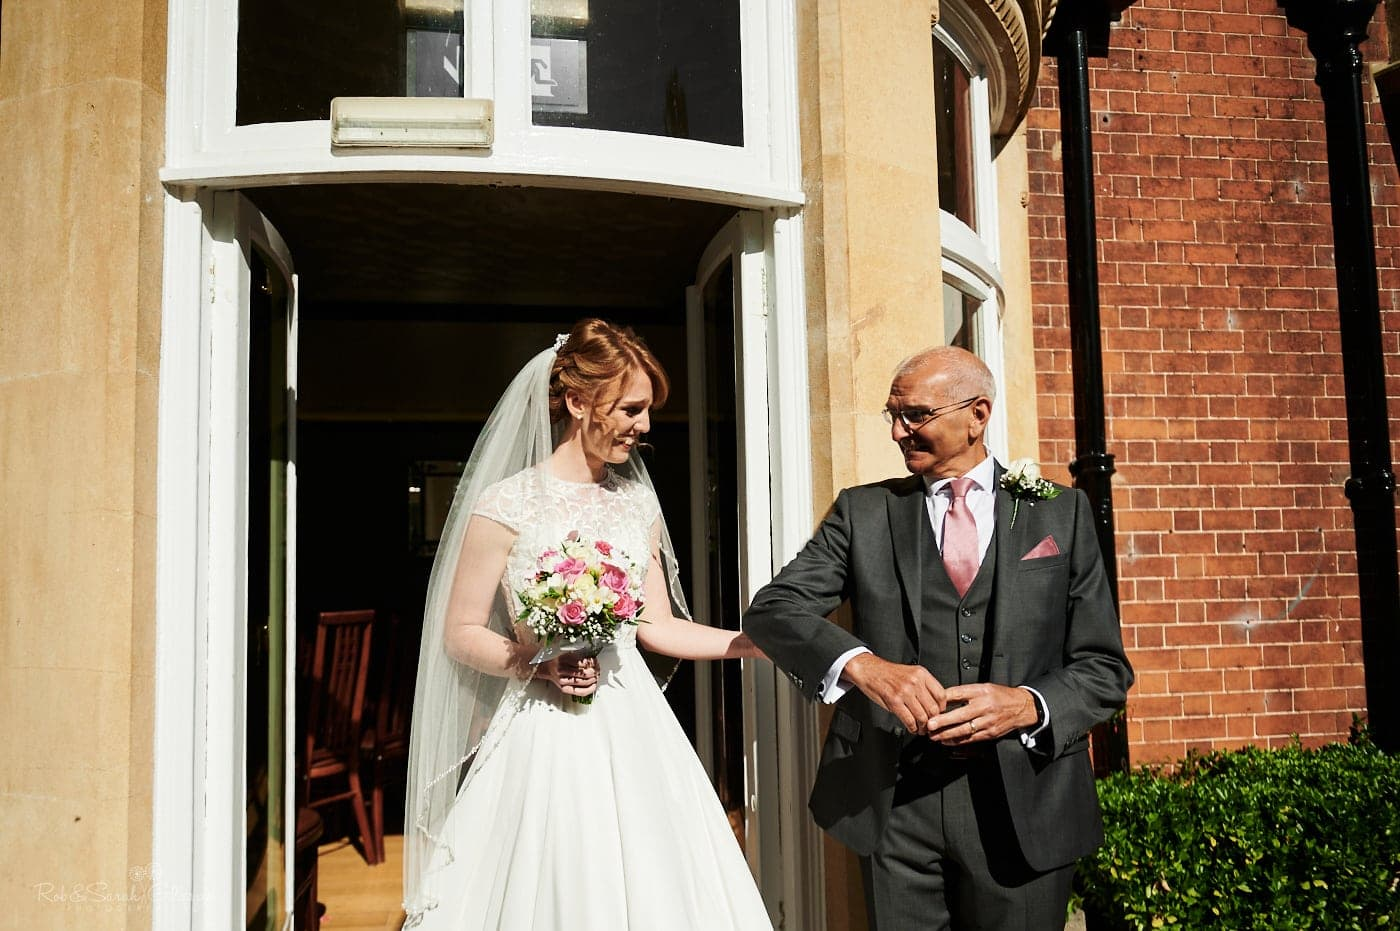 Bride and father make their way to outdoor ceremony with small number of guests